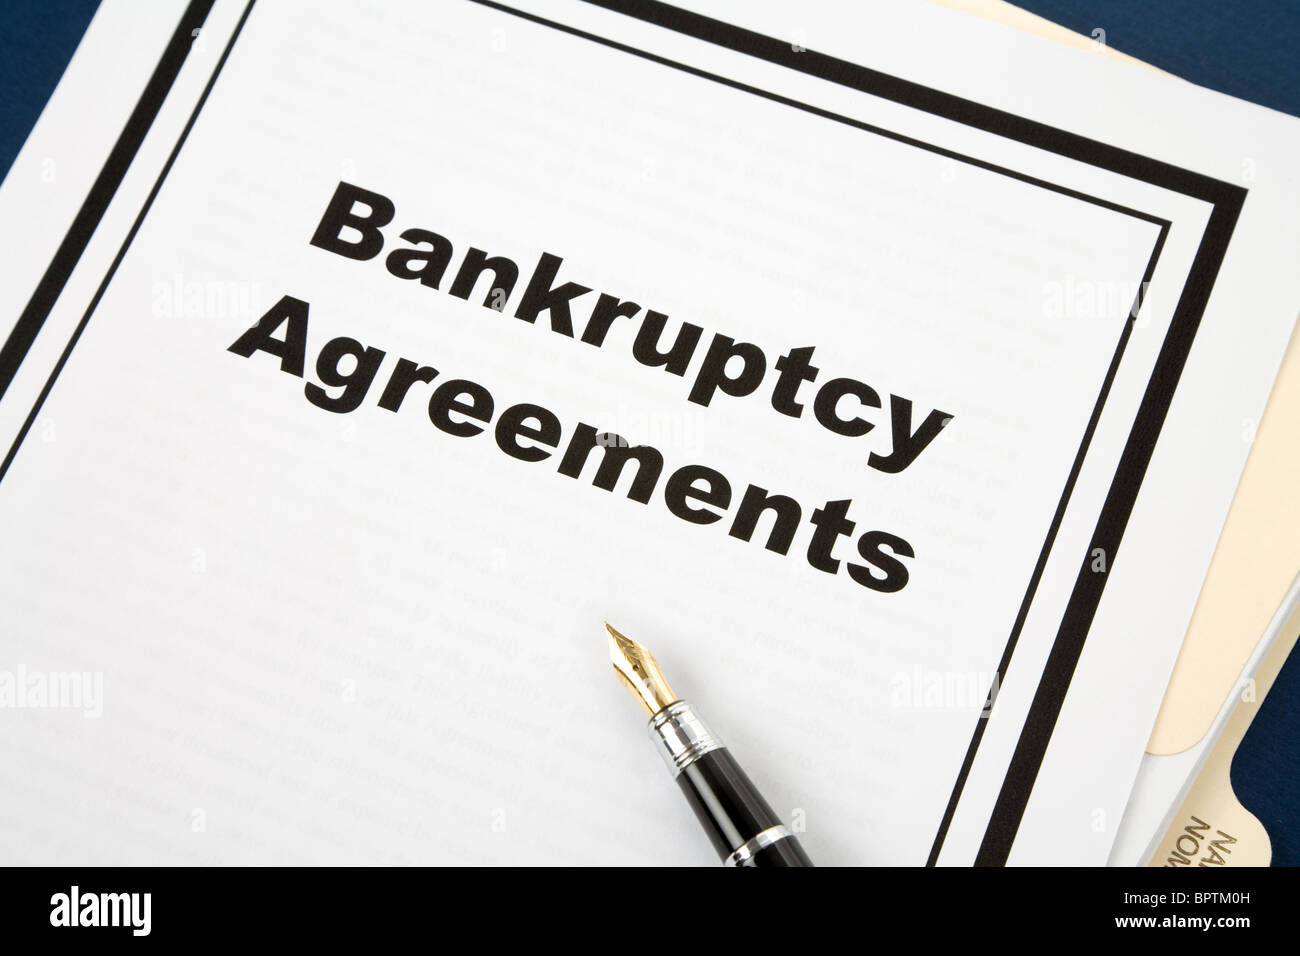 Bankruptcy Agreement and pen, business concept - Stock Image